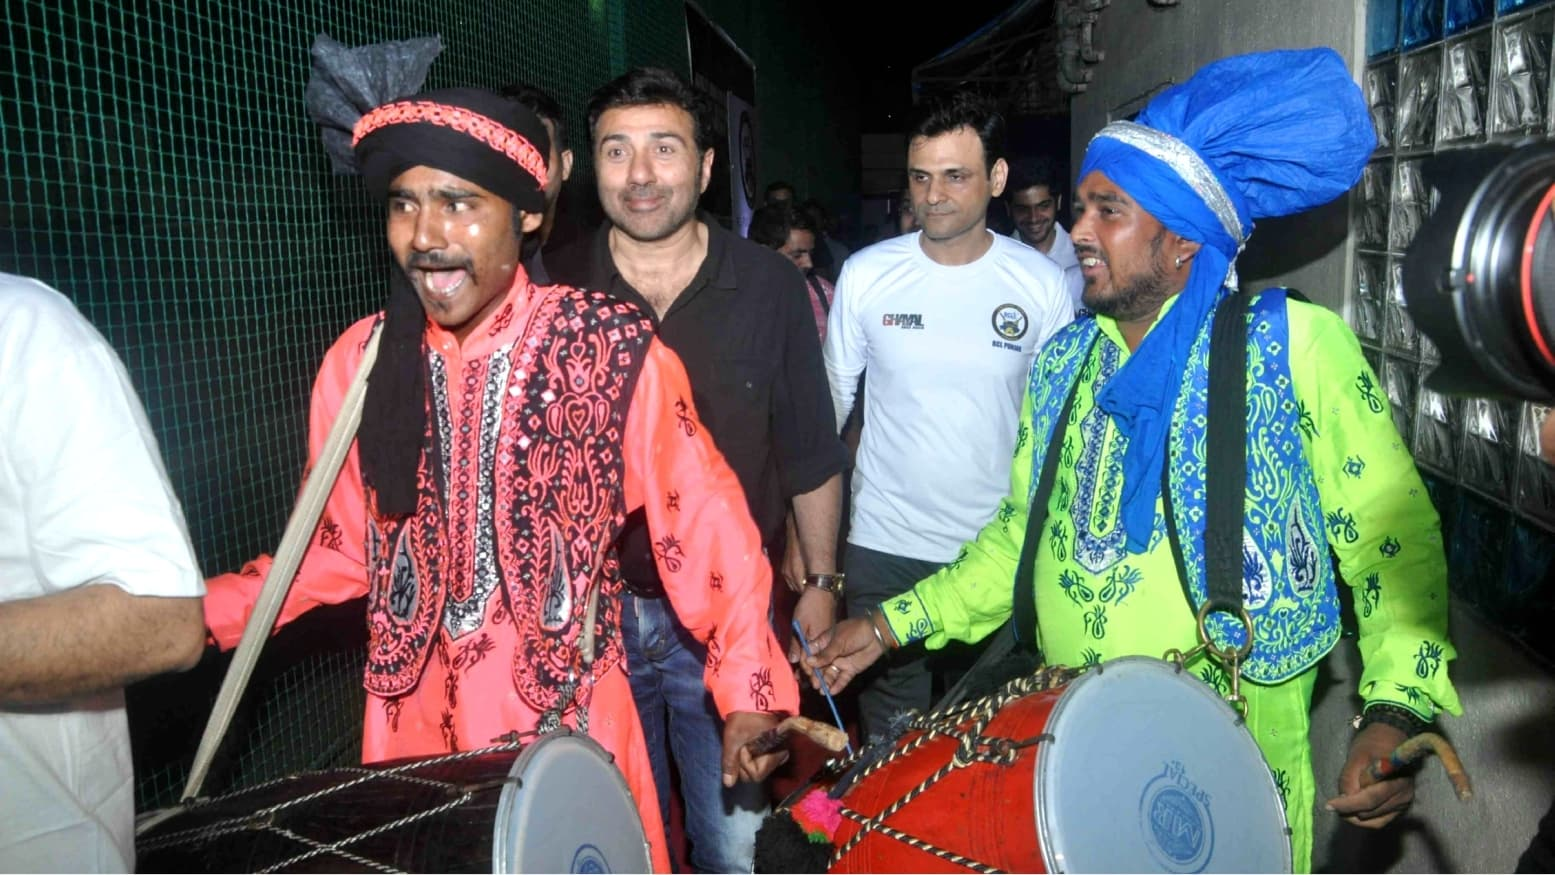 Sunny Deol at a Ghayal Once Again promotional event - Photo courtesy Indiglamour